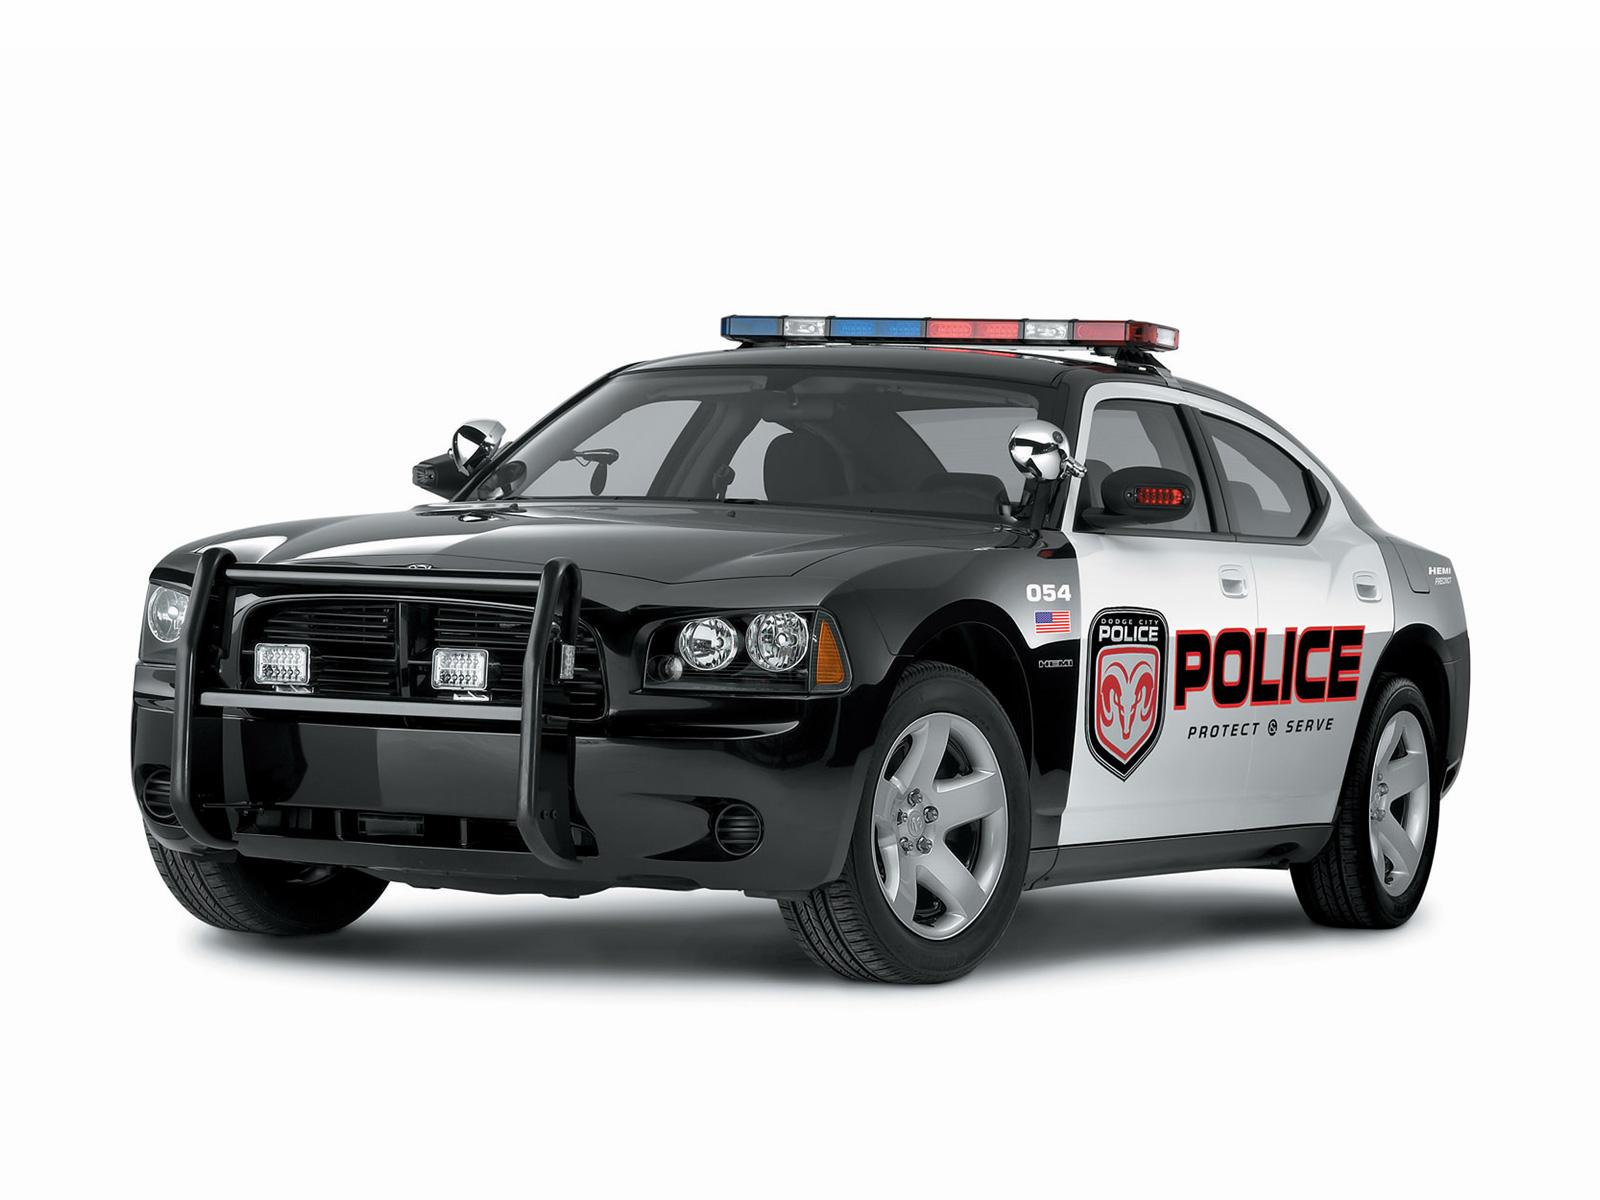 1600x1200 Charger Police car desktop wallpapers and stock photos